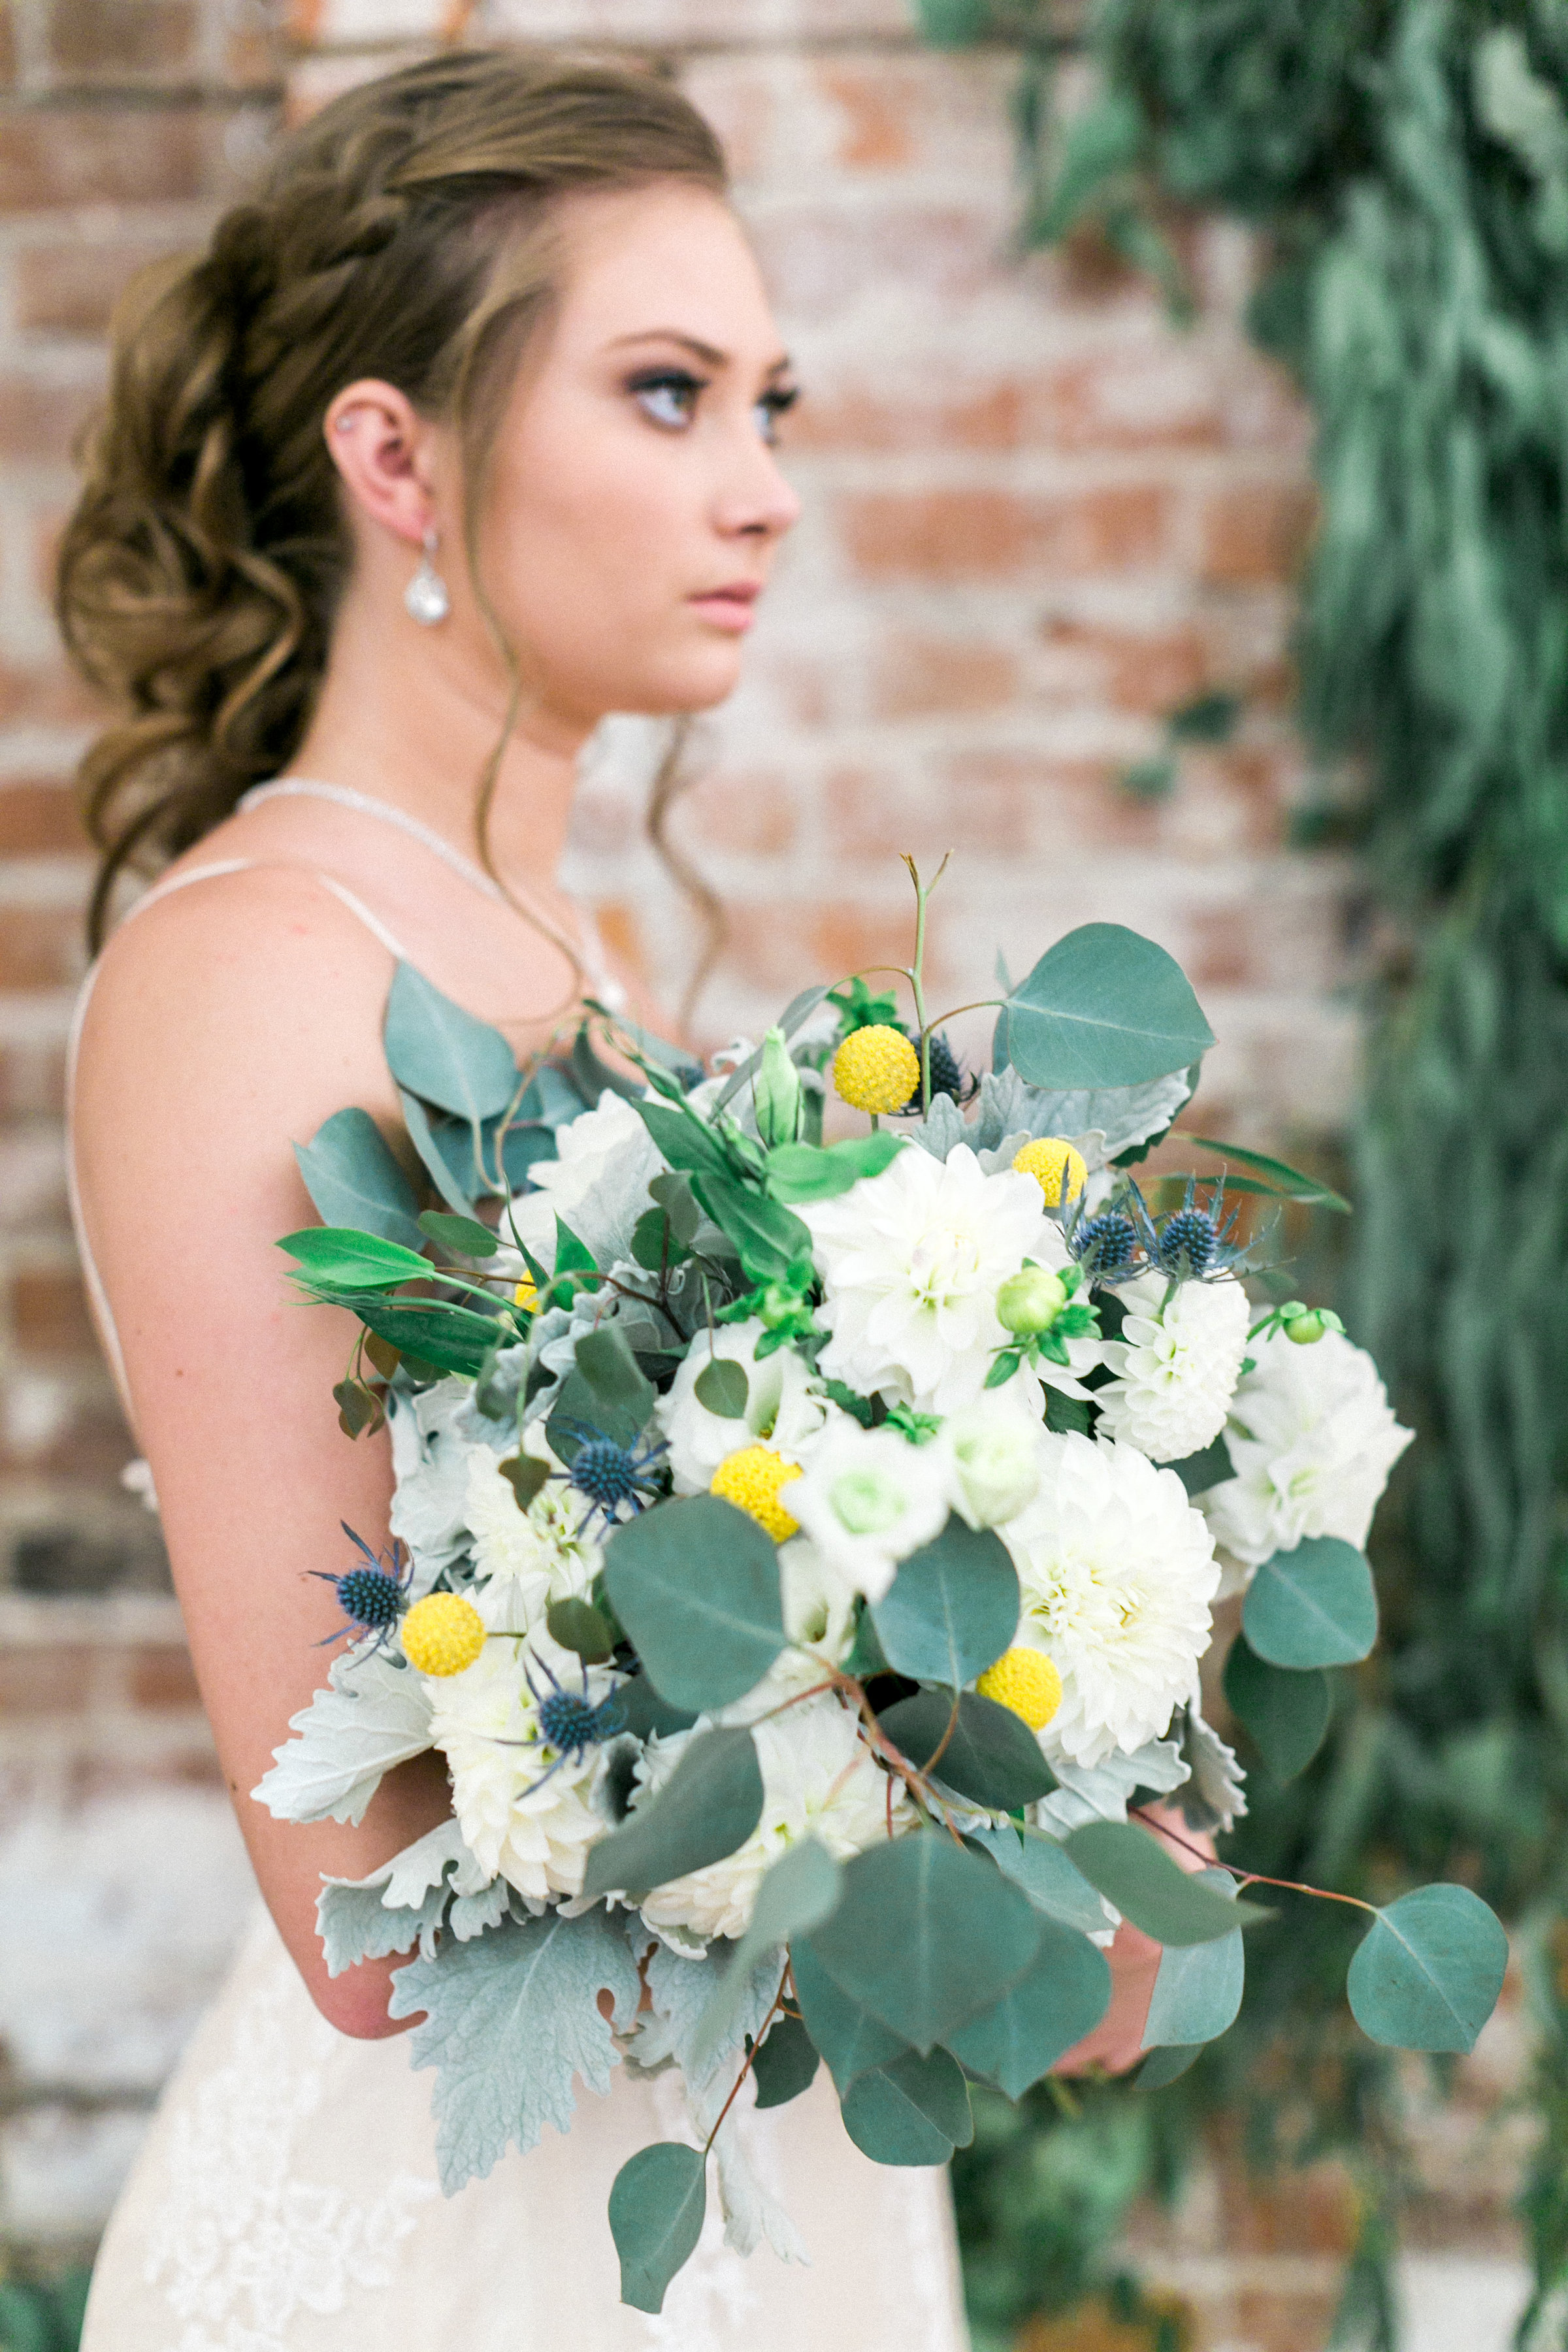 Perfect-blend-tailor-made-styled-shoot-jody-atkinson-photo_0207.jpg